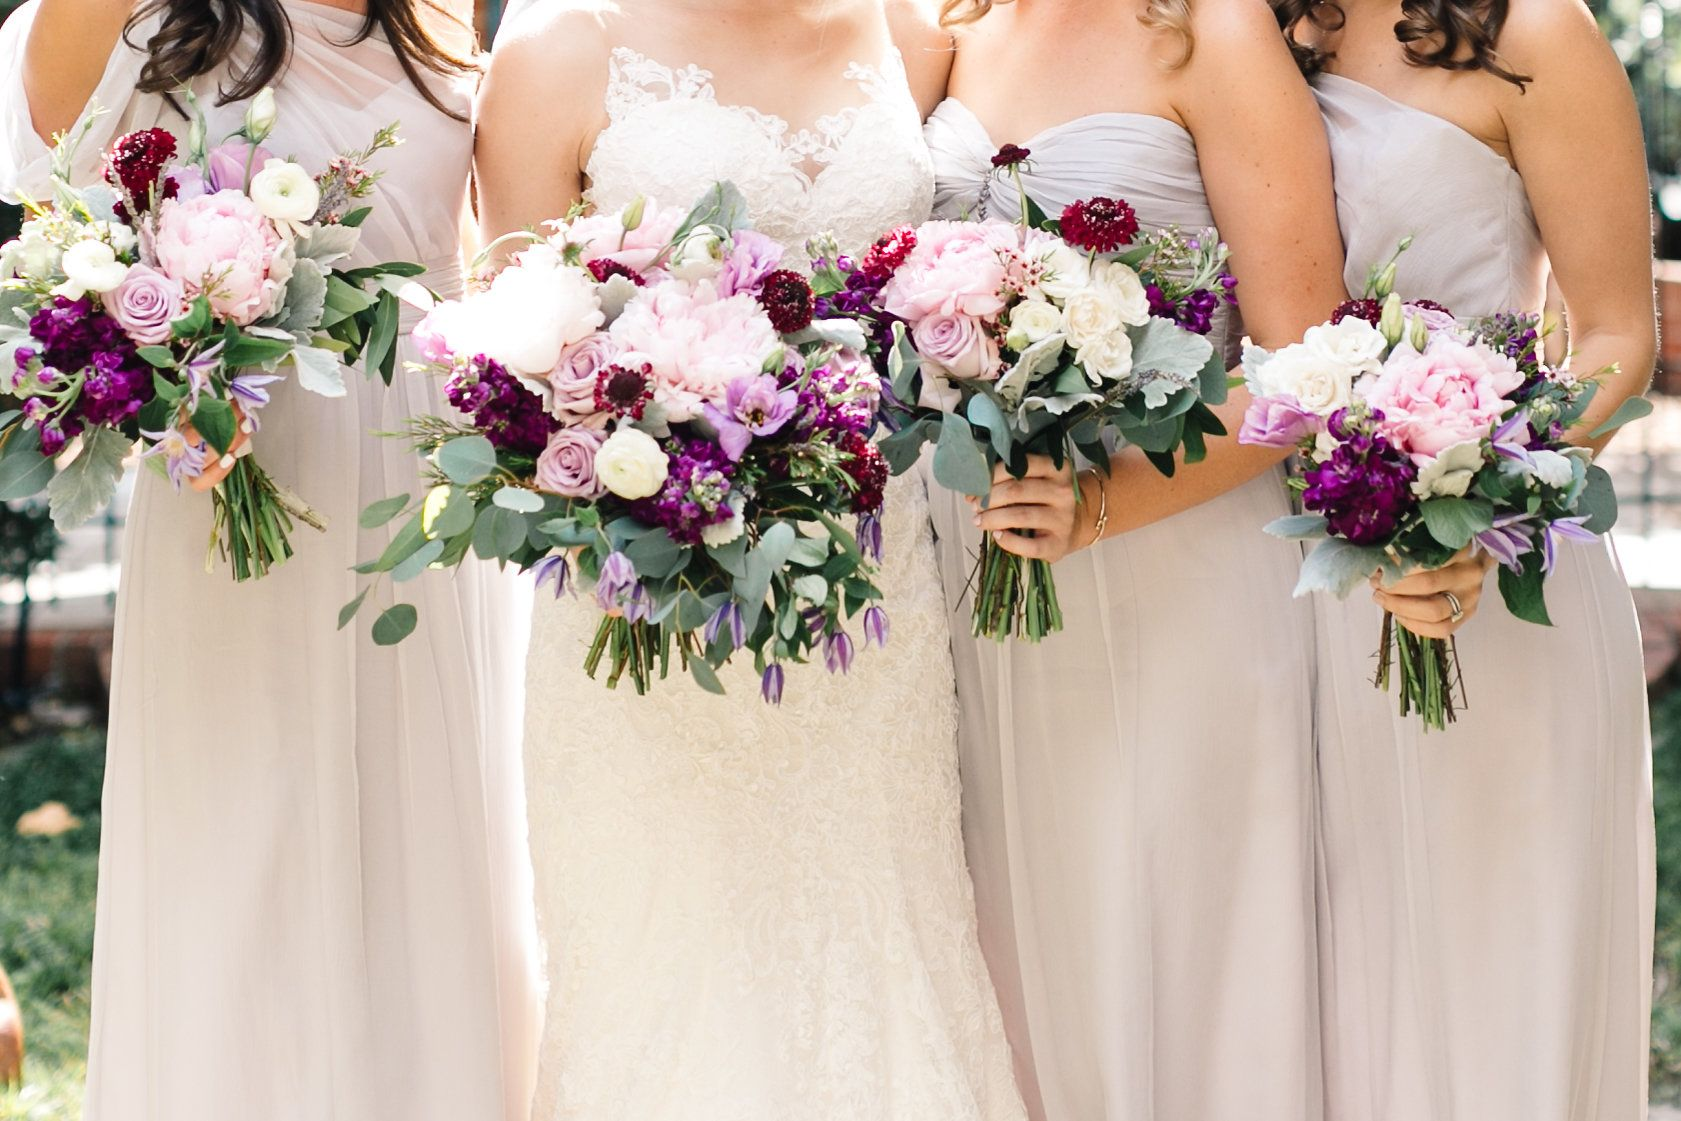 Bride And Her Bridesmaids In Pale Grey Gowns Carry Their Bouquets